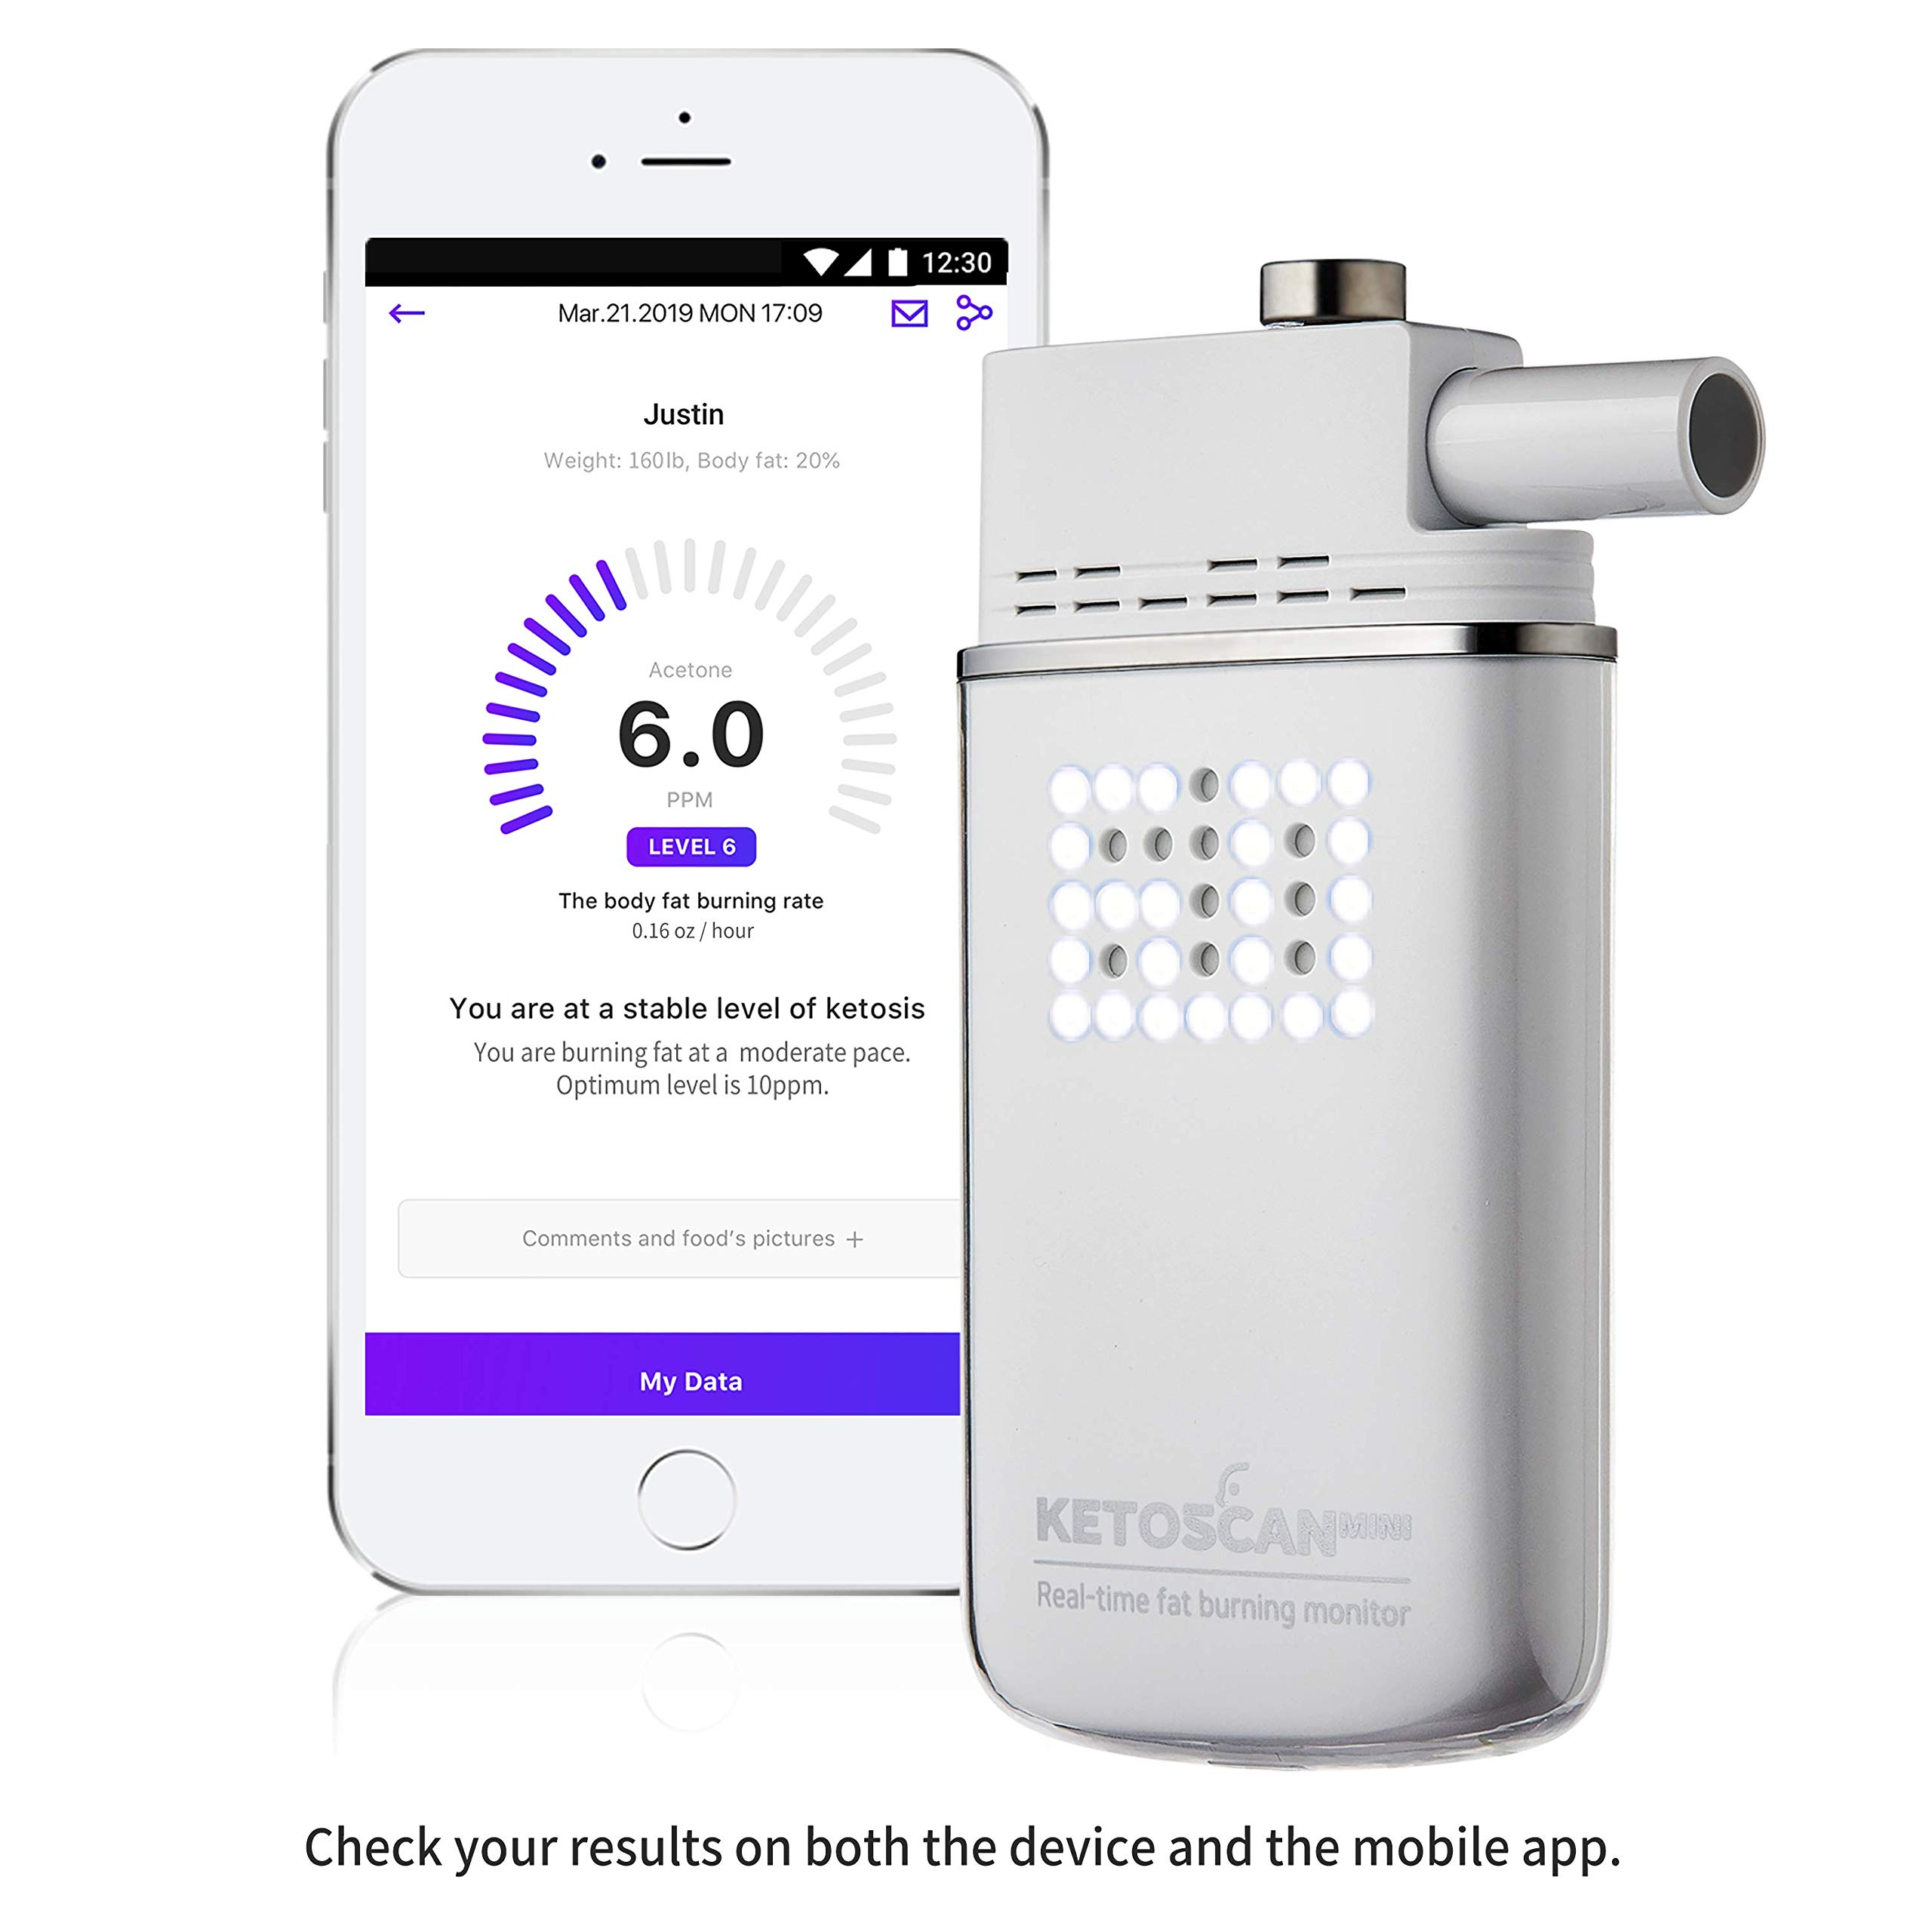 [Upgraded V2] KETOSCAN Mini Breath Ketone Meter | FDA Class 1 Approved | Monitor Your Fat Metabolism or Level of Ketosis on Low carb, Ketogenic, Paleo Diet or Any Nutrition and Fitness Program by KETOSCAN